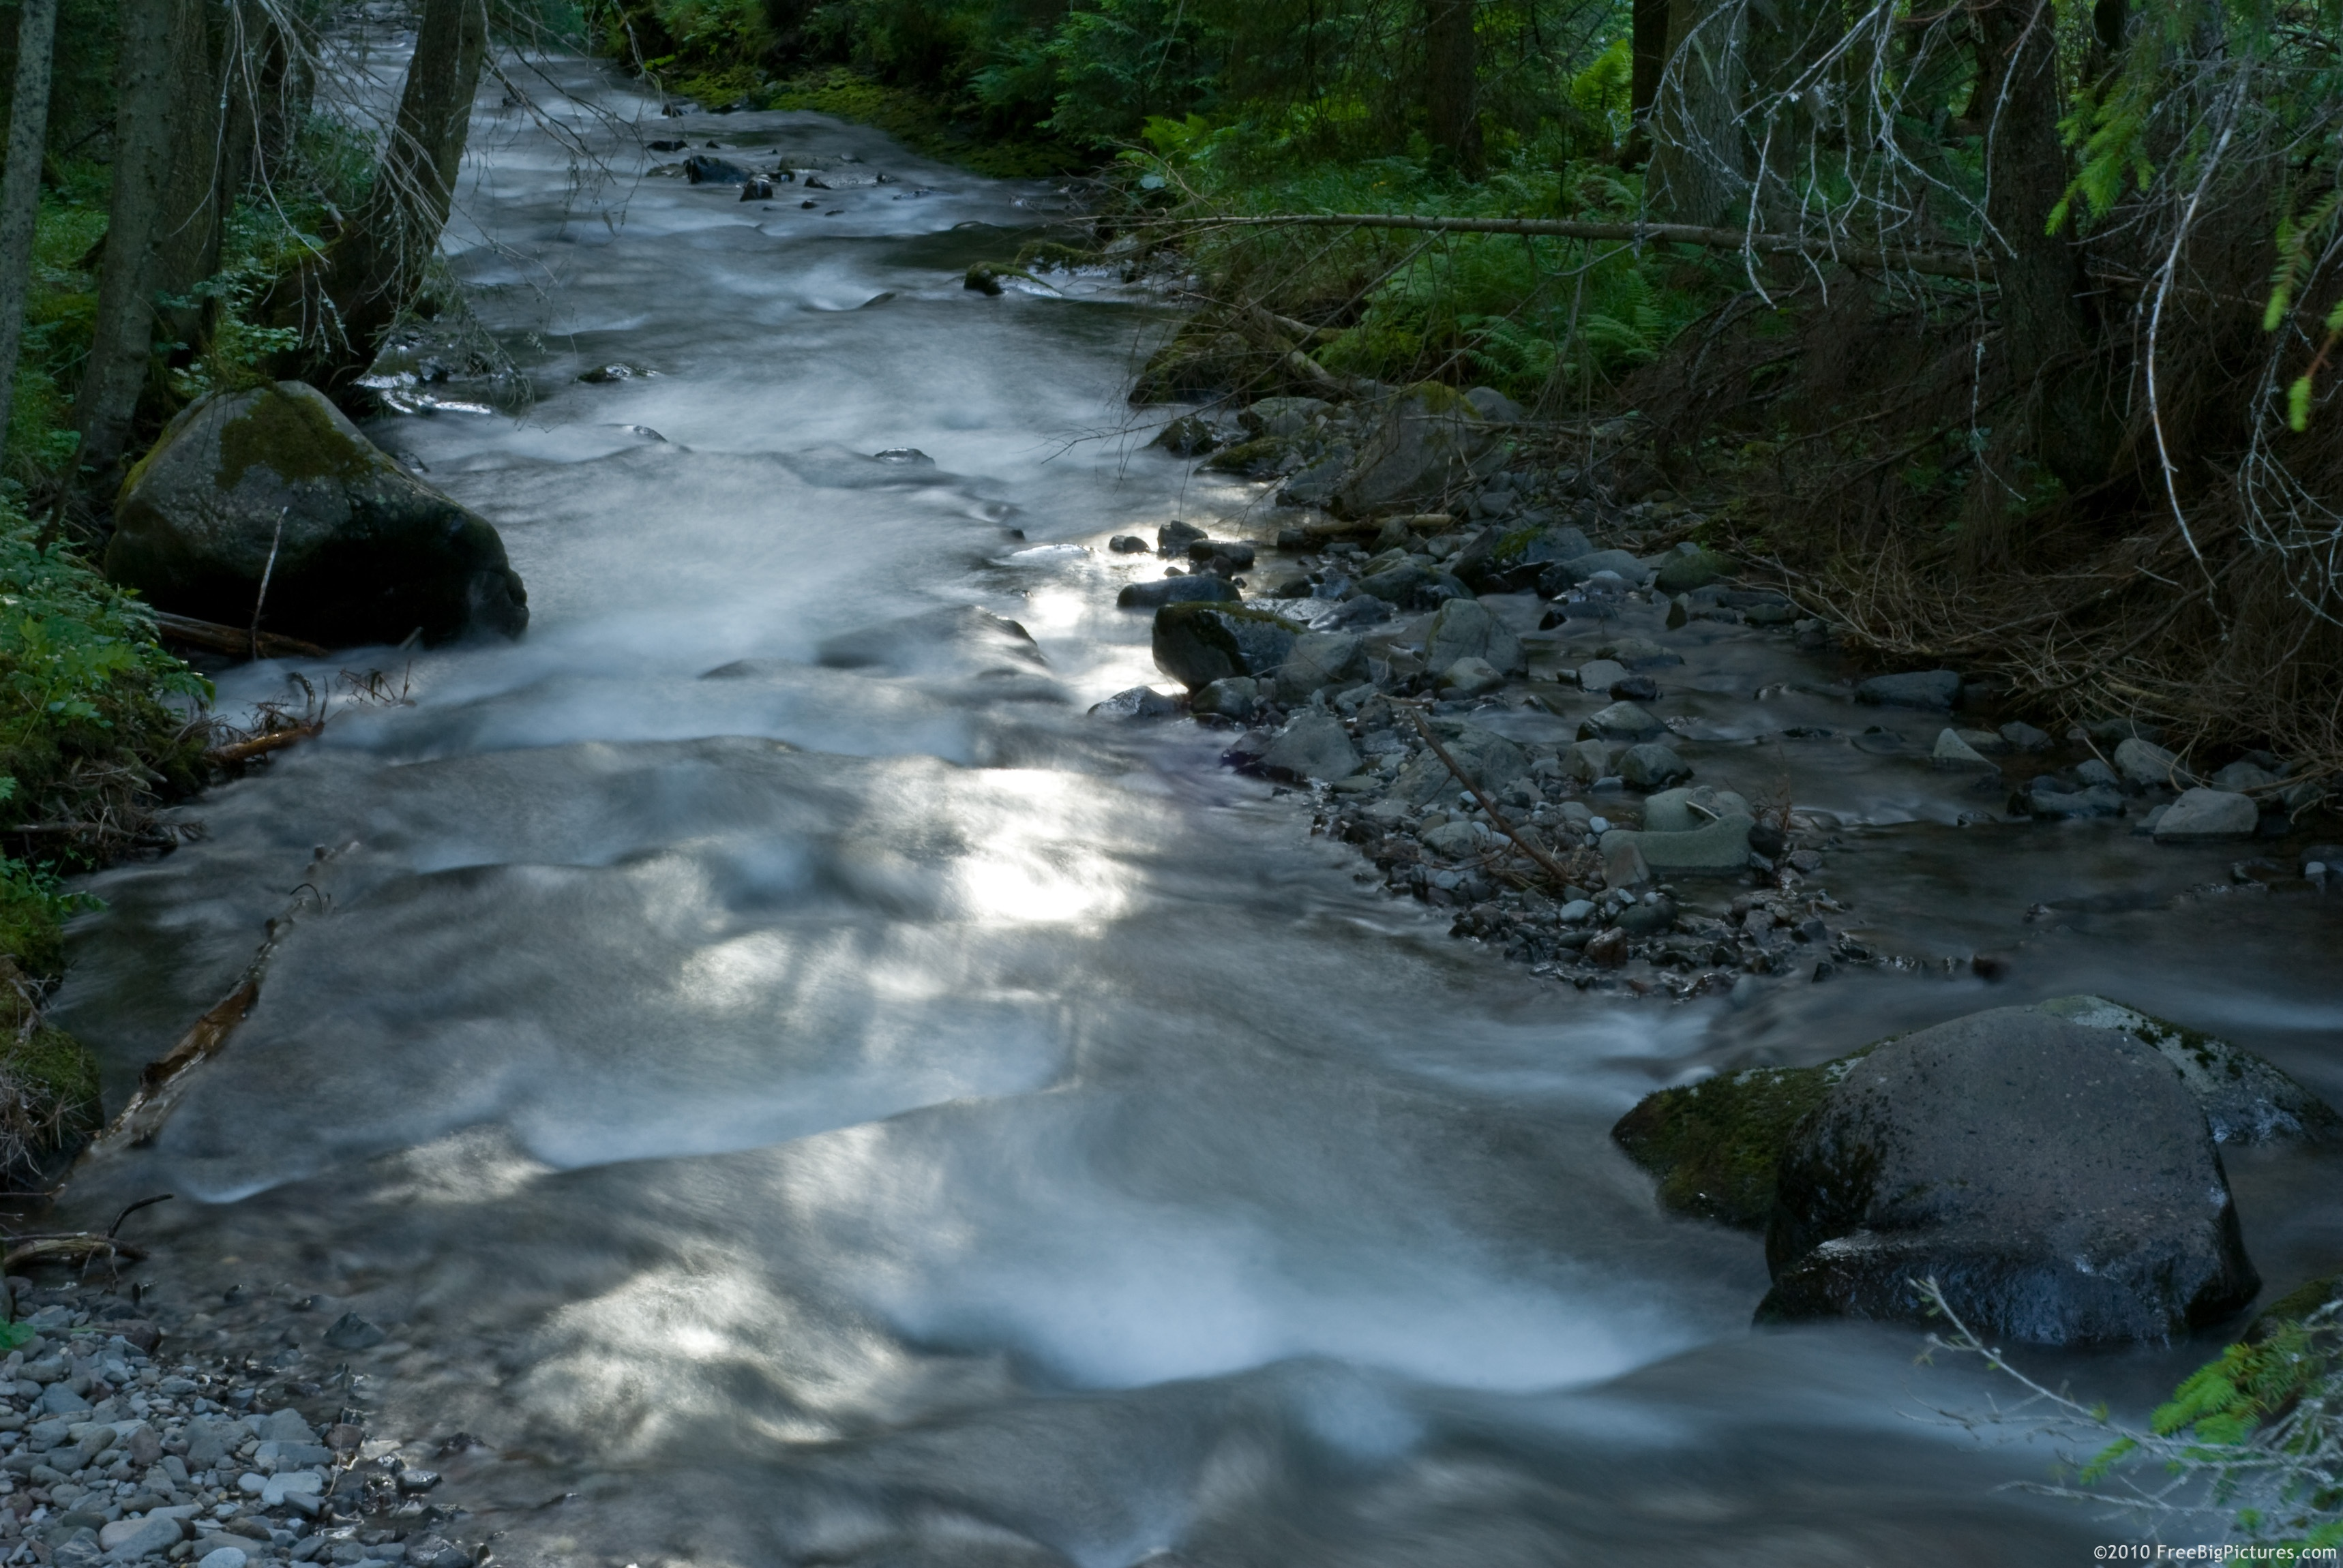 Picture of the fast flow of a river